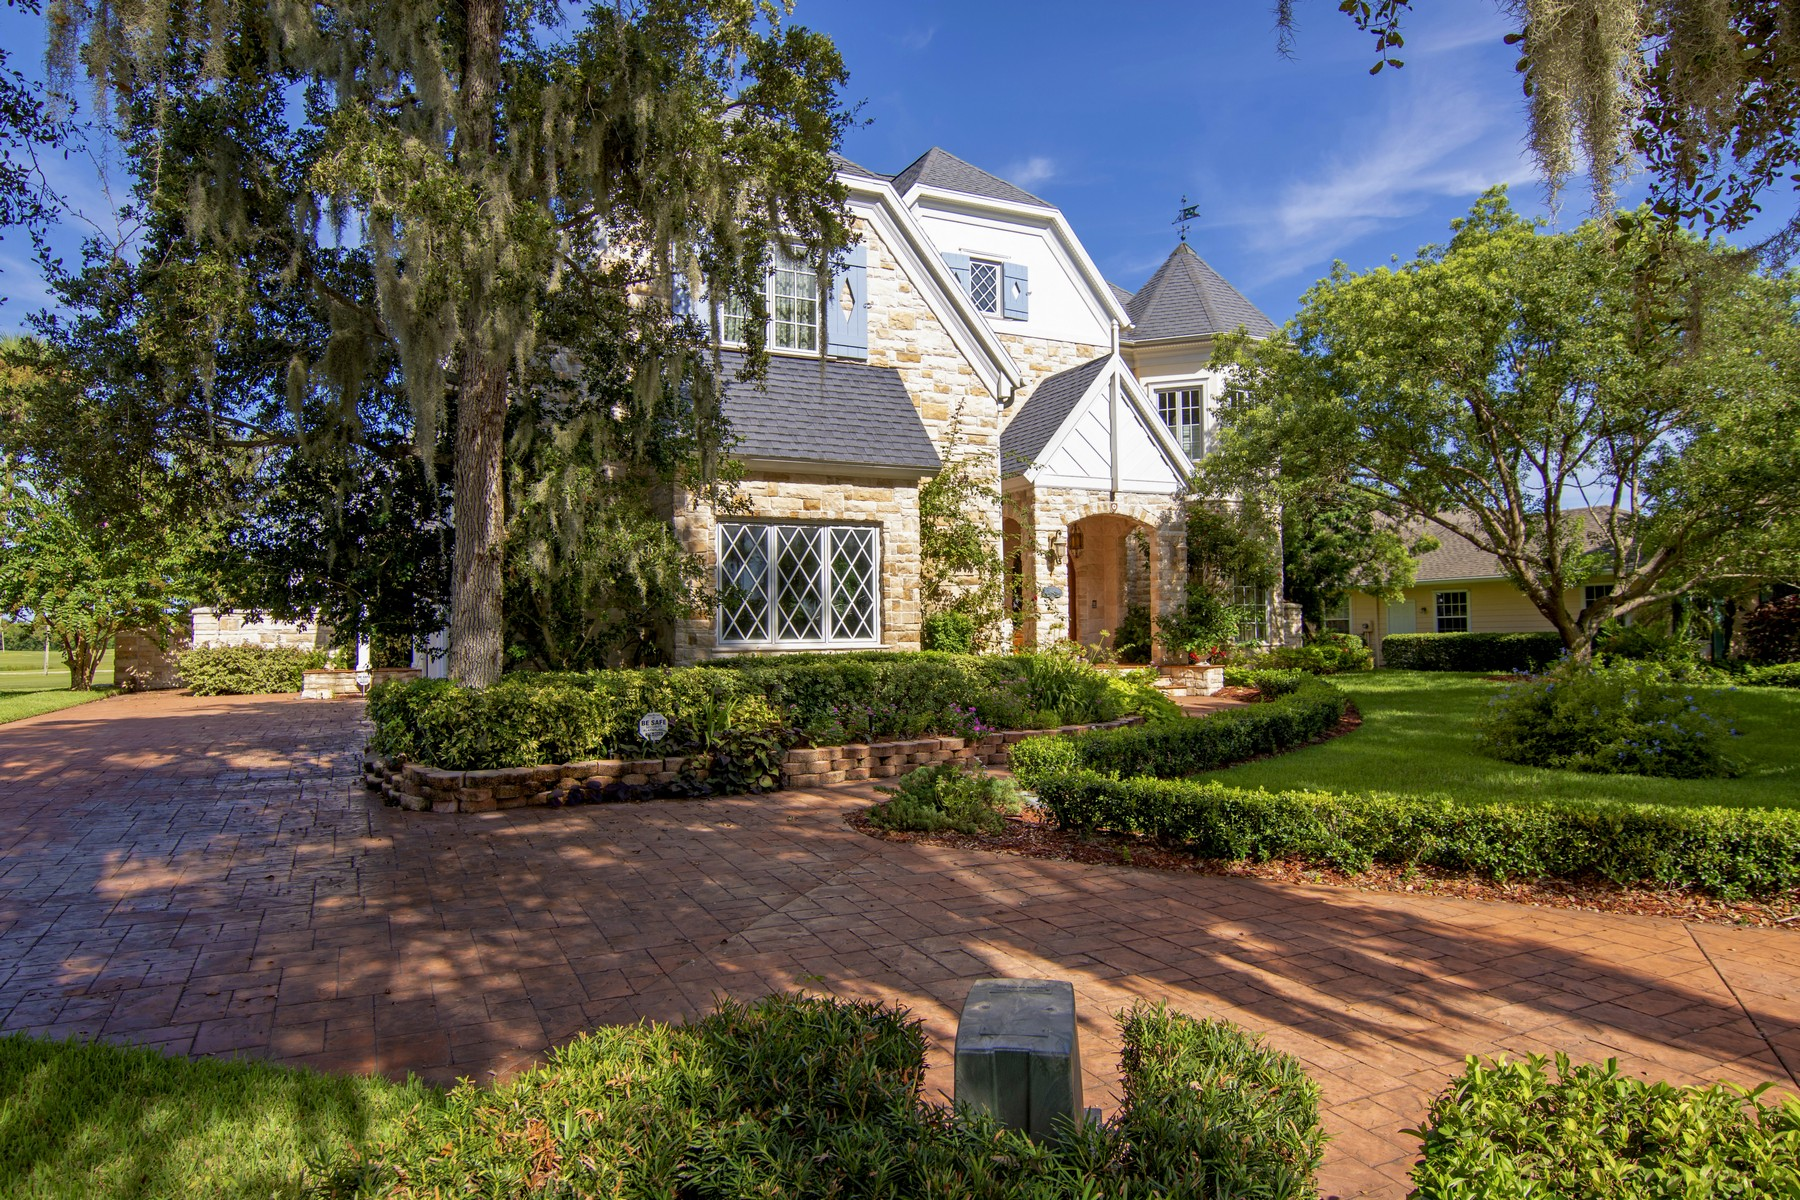 Additional photo for property listing at Exquisite Home With European Charm on Golf Course 3430 Buckinghammock Trail Vero Beach, Florida 32960 United States